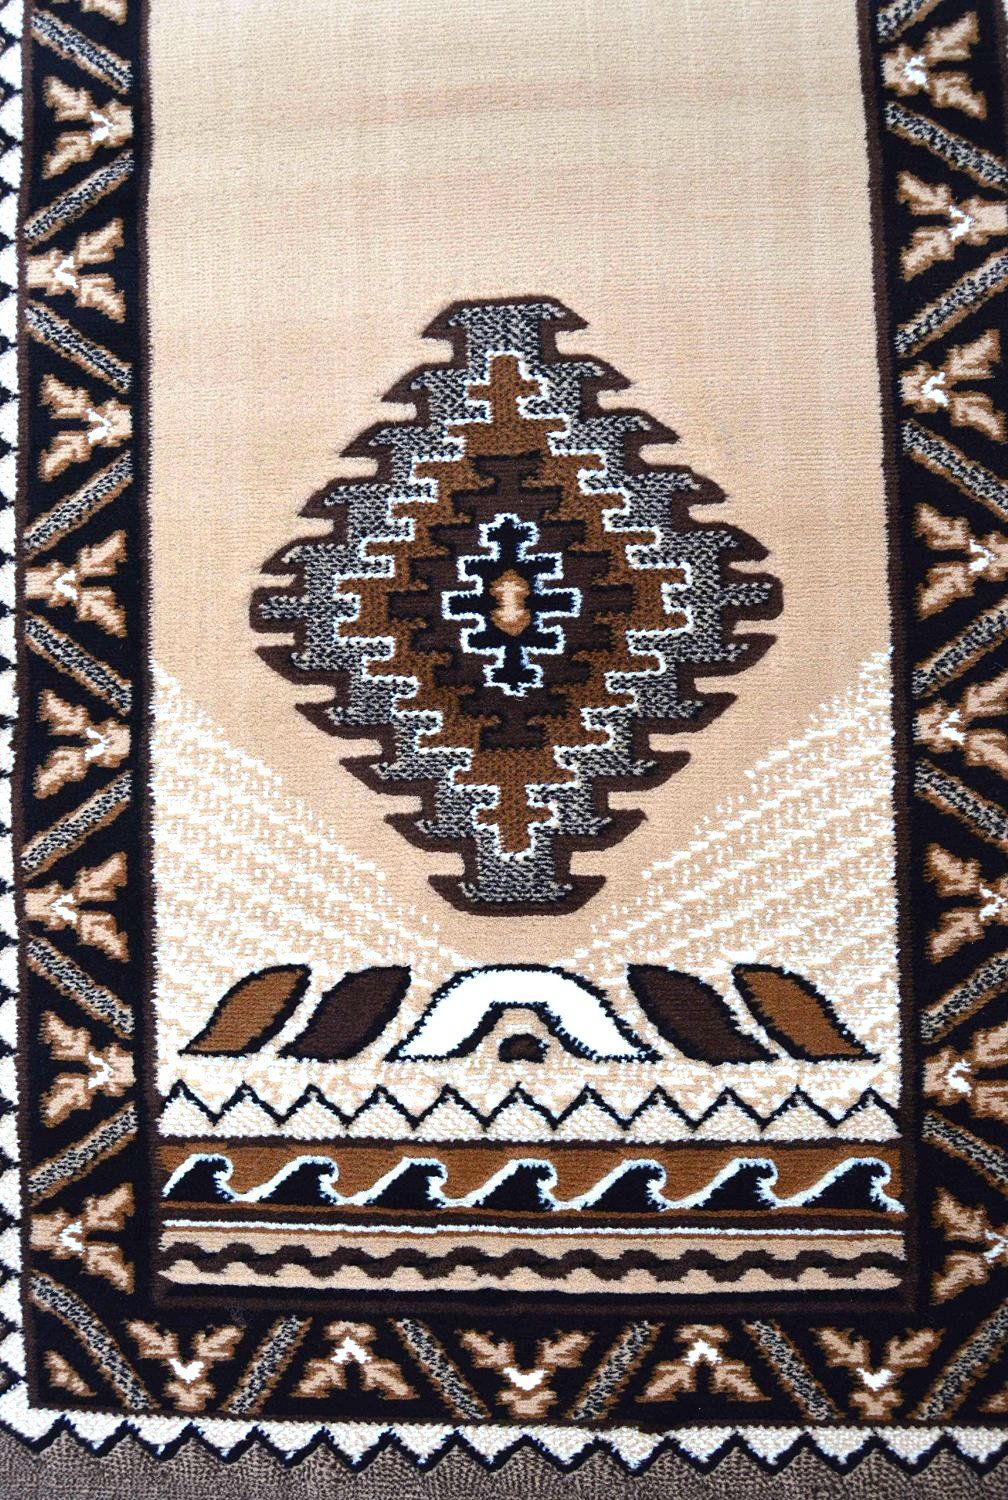 Rugs 4 Less Collection Southwest Native American Indian Long Runner Area Rug Design R4l 143 Beige Berber 24x1011 You Can Get Additional Details At The